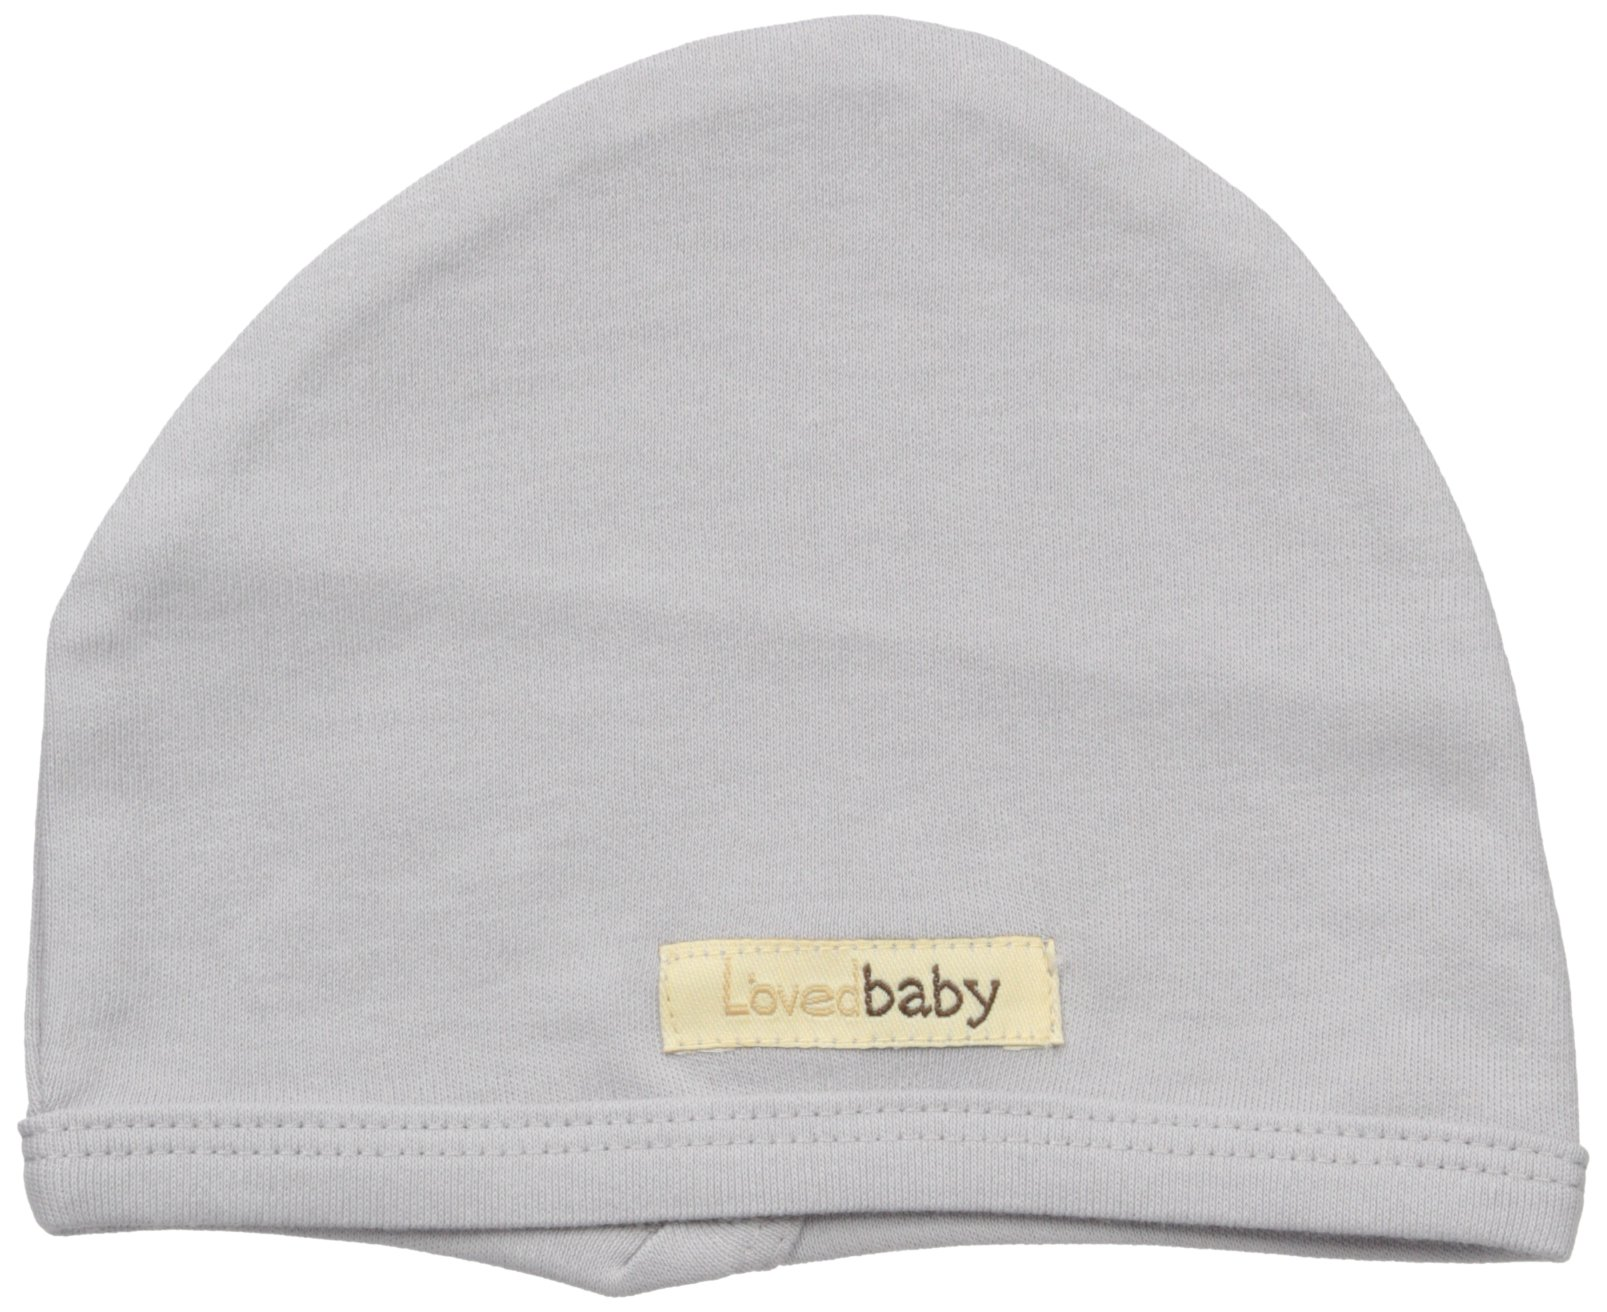 L'ovedbaby Baby Organic Cotton Hat, Light Gray, 6-12 Months